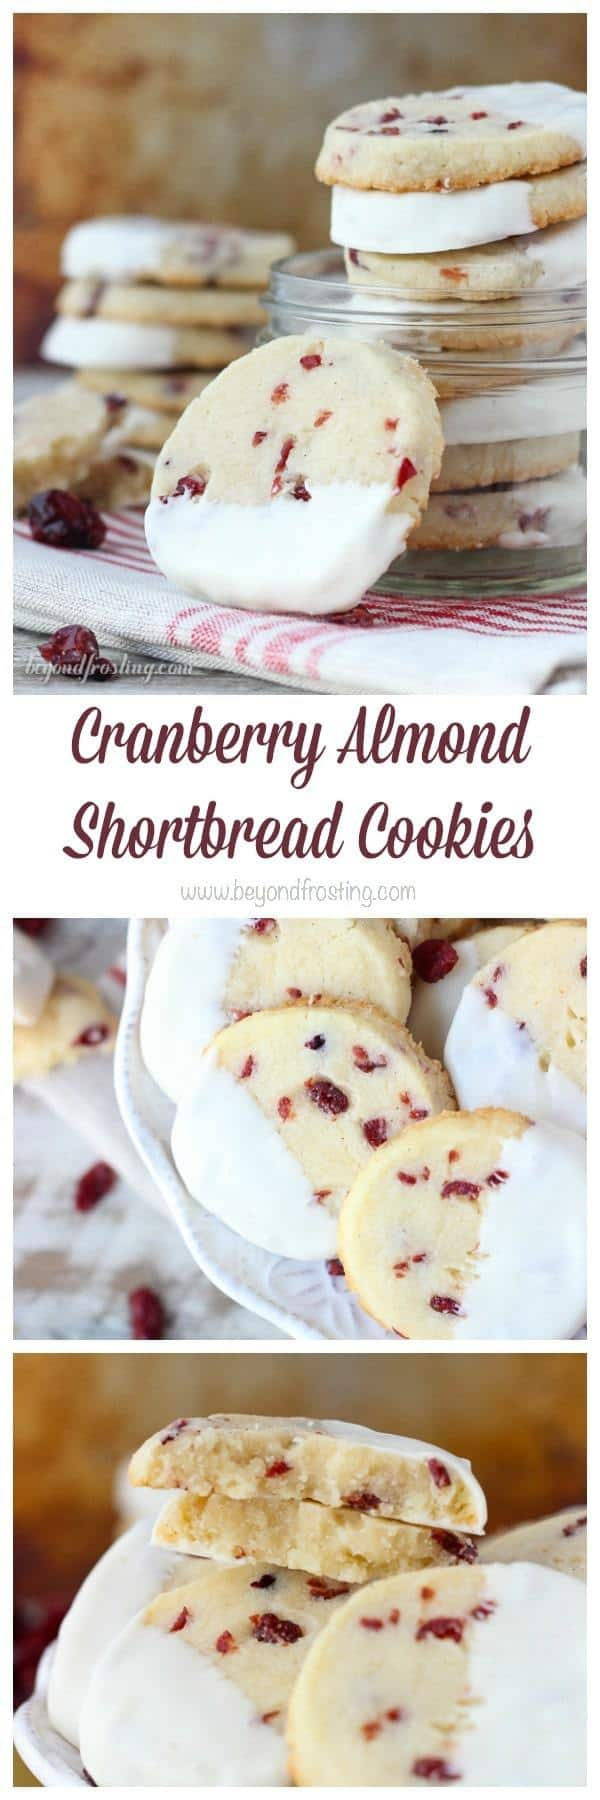 These Cranberry Almond Shortbread Cookies are a soft and buttery almond shortbread loaded with sweetened cranberries and dipped in white chocolate.